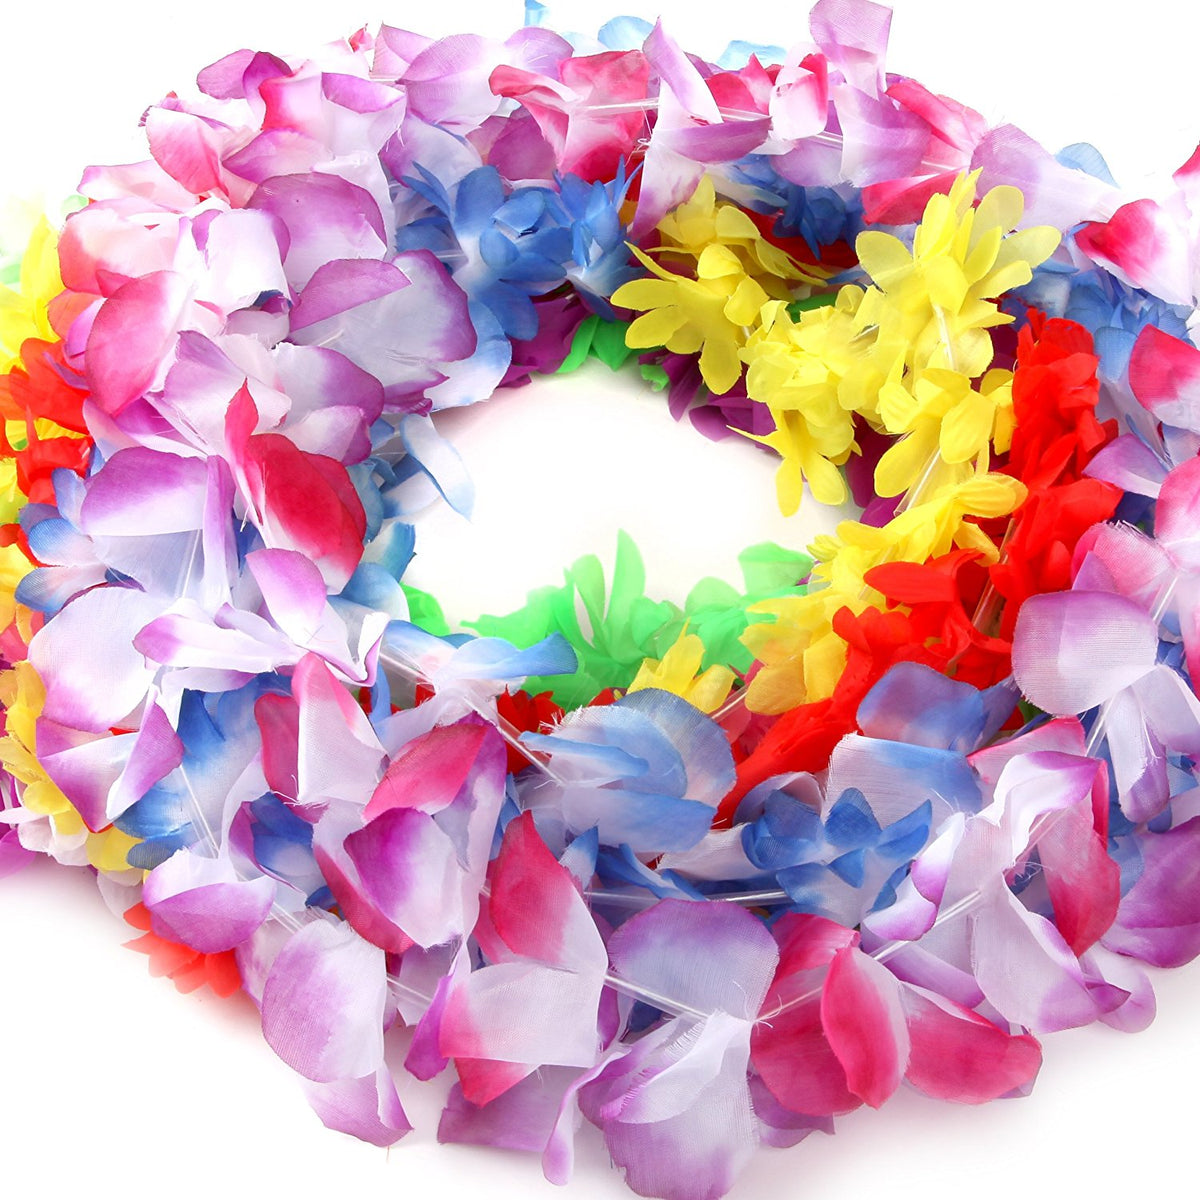 Silk Hawaiian Leis Necklace For Luau Party Flower Lei Garland With